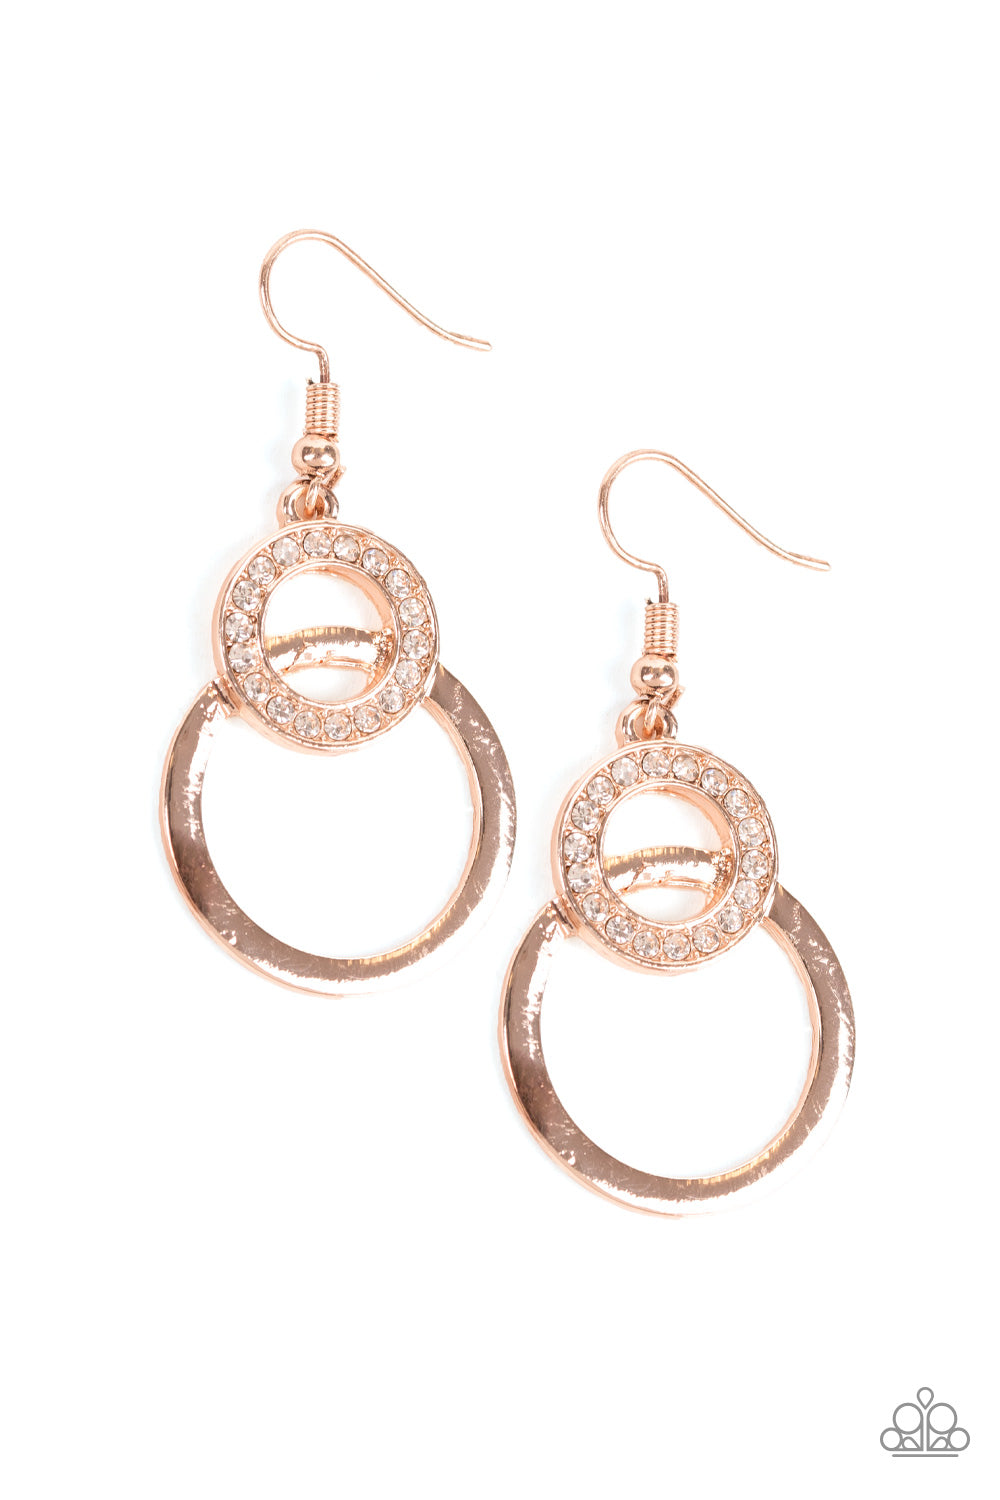 "Paparazzi Accessories - Paparazzi ""Regal Refinery"" - Rose Gold - Earrings"